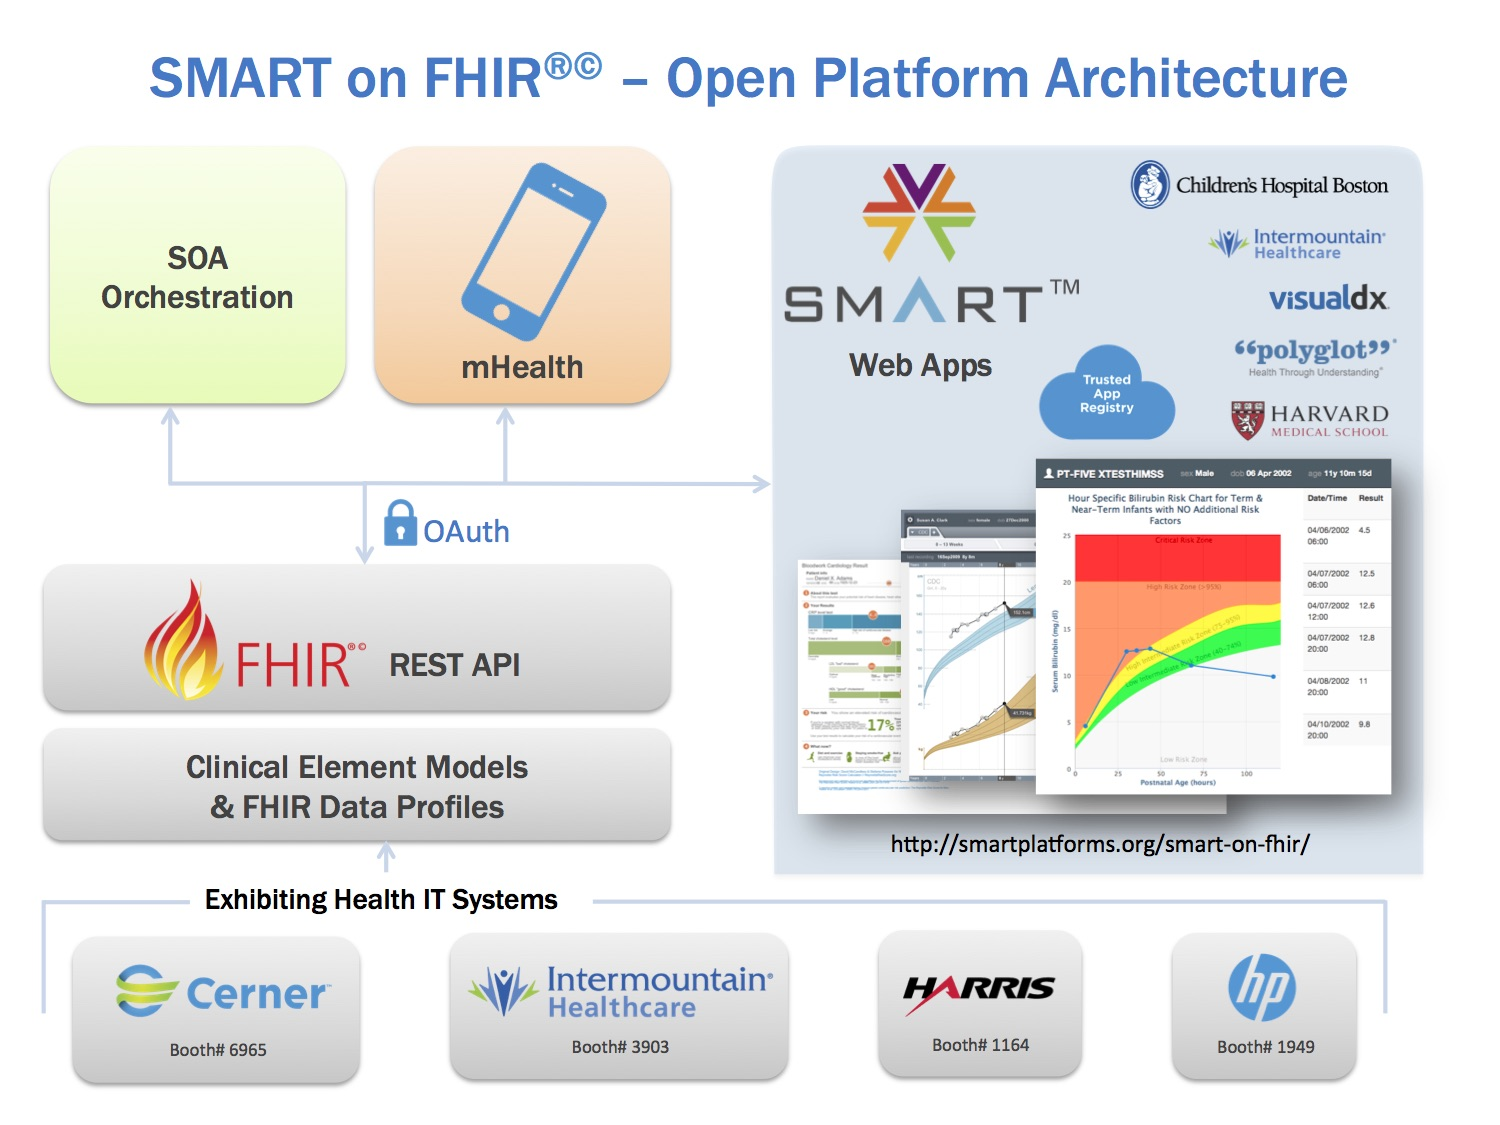 Smart on FHIR - Open Platform Architecture Infographic